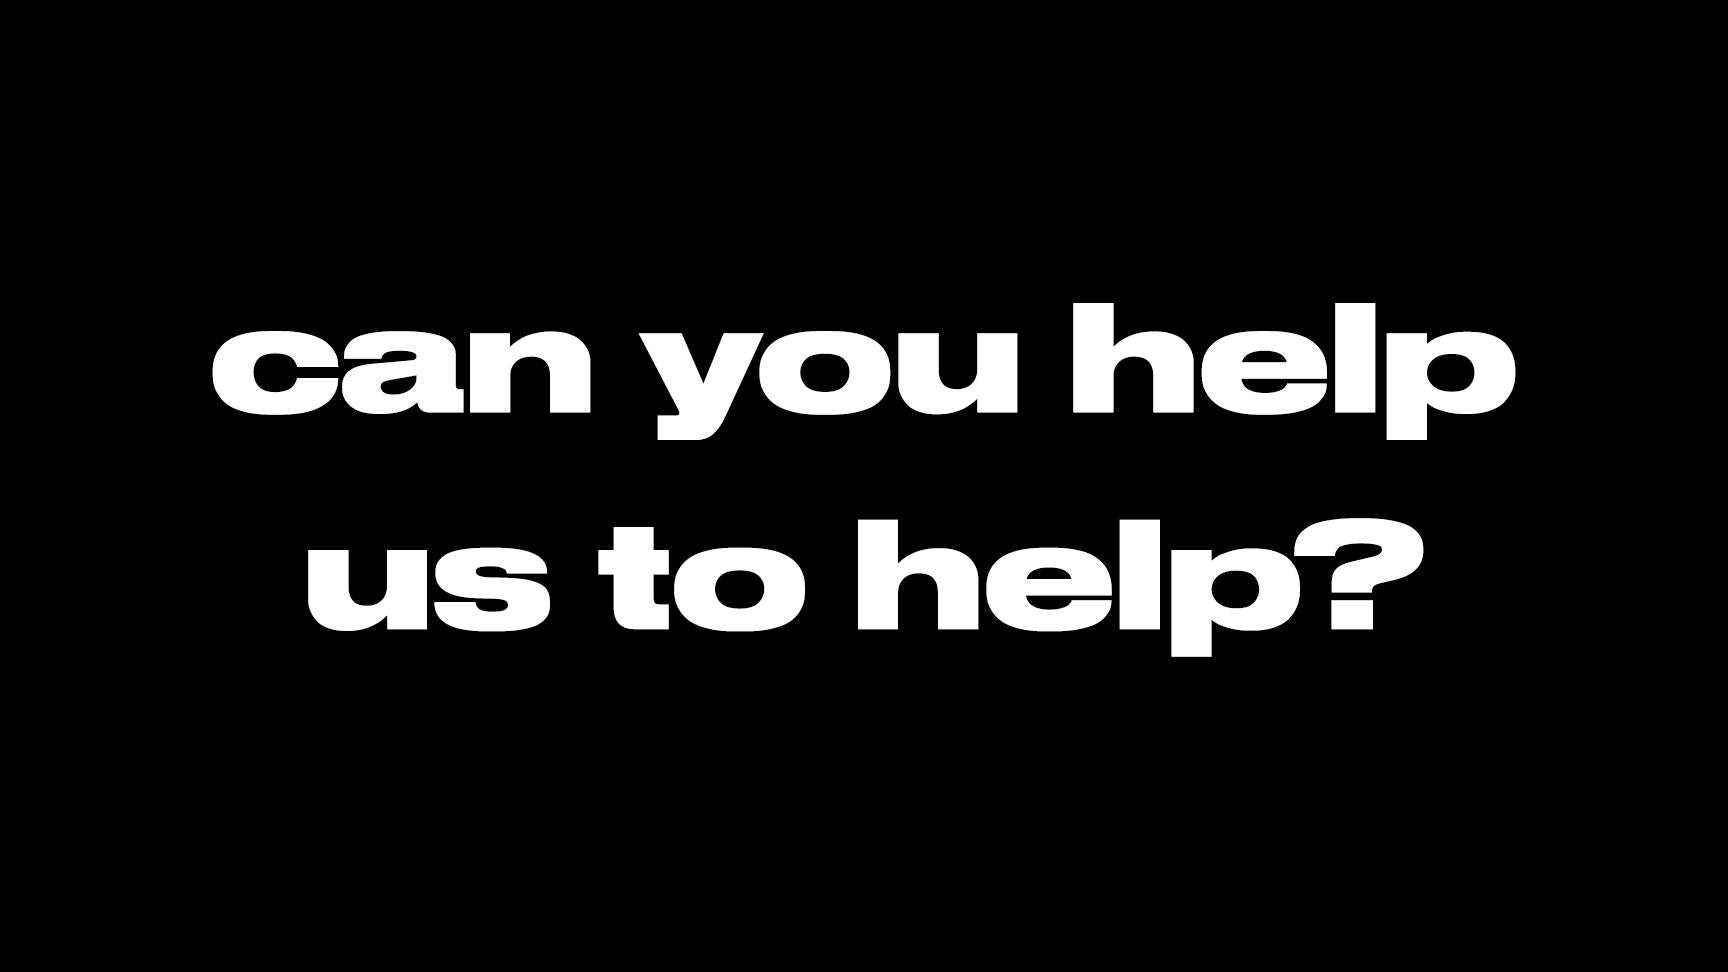 an image that says can you help us to help on a plain black background